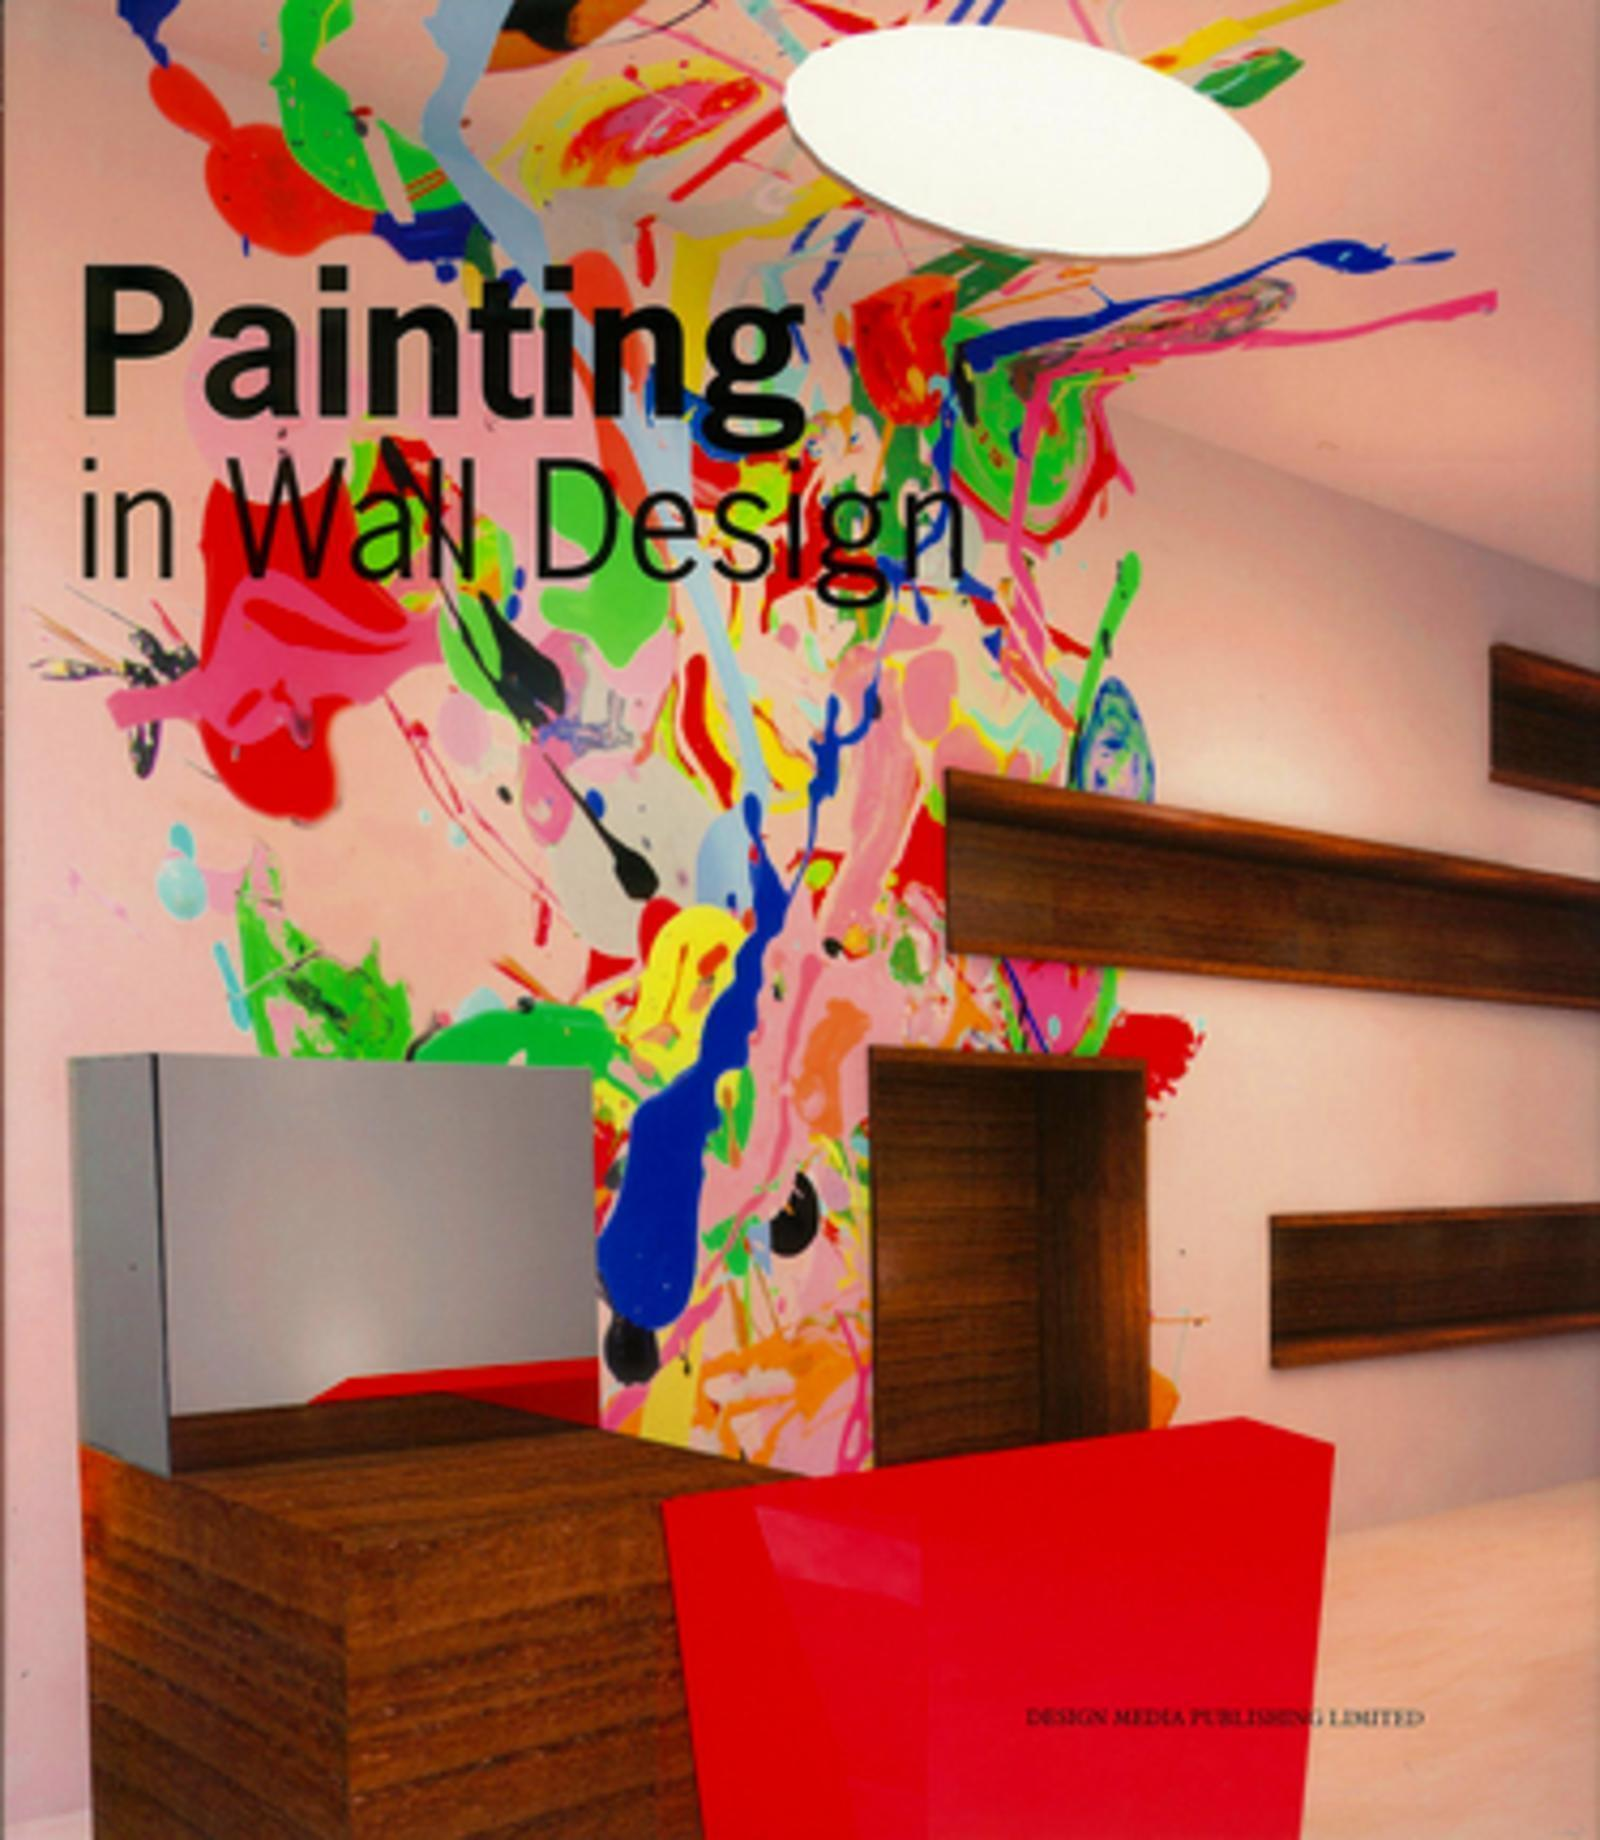 PAINTING IN WALL DESIGN - OUVRAGE EN ANGLAIS.